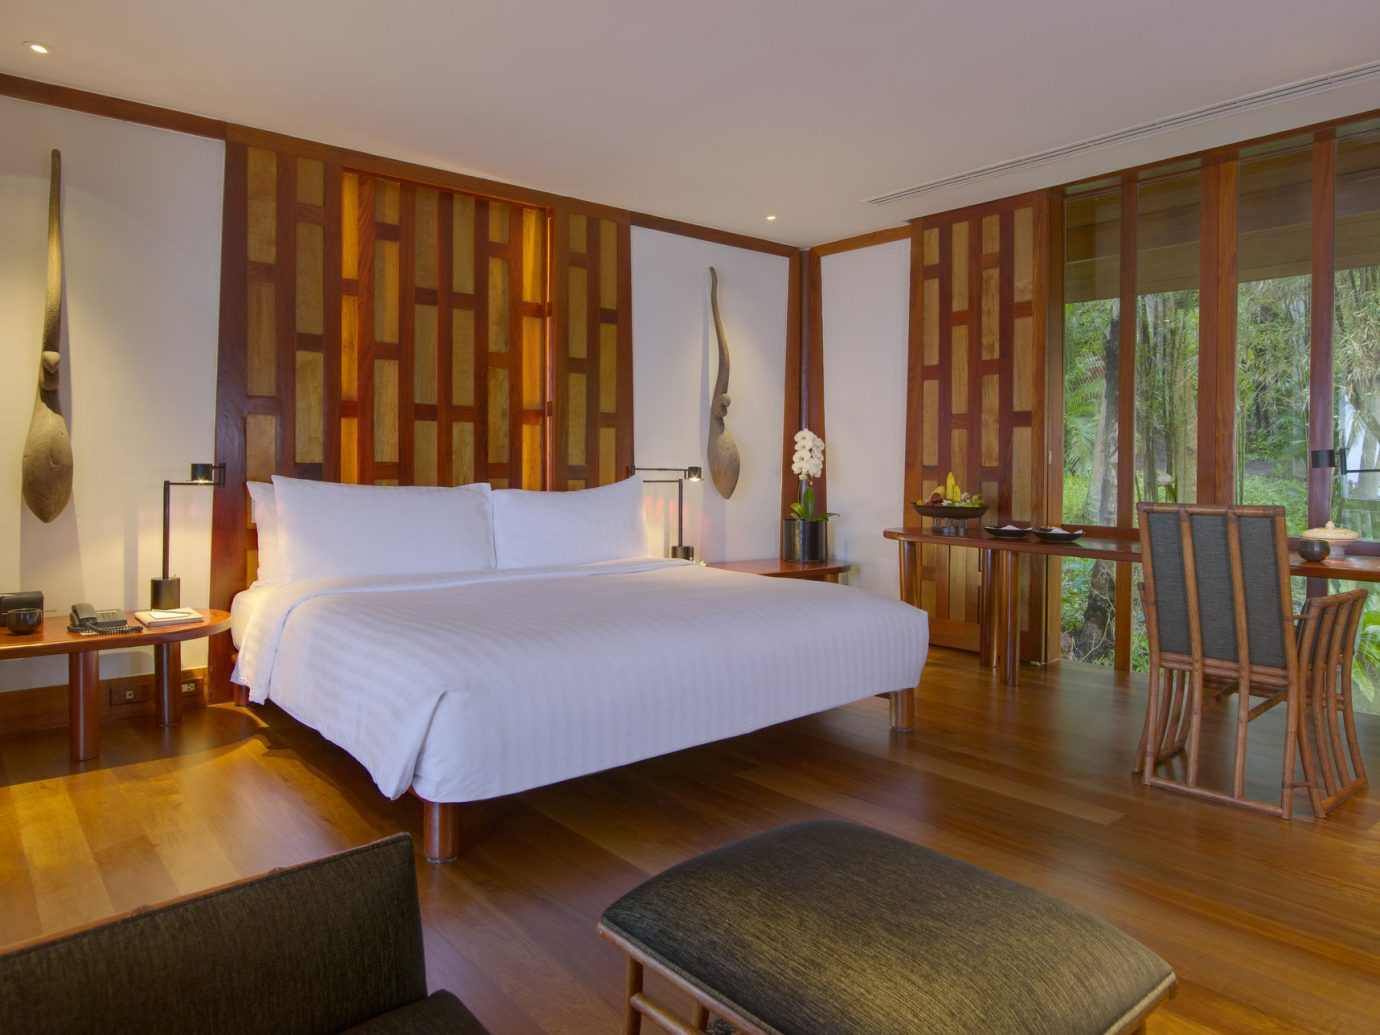 Beach Hotels Phuket Thailand floor indoor wall room ceiling bed property estate Bedroom Suite interior design hotel real estate hardwood Villa nice apartment living room Resort furniture wood area